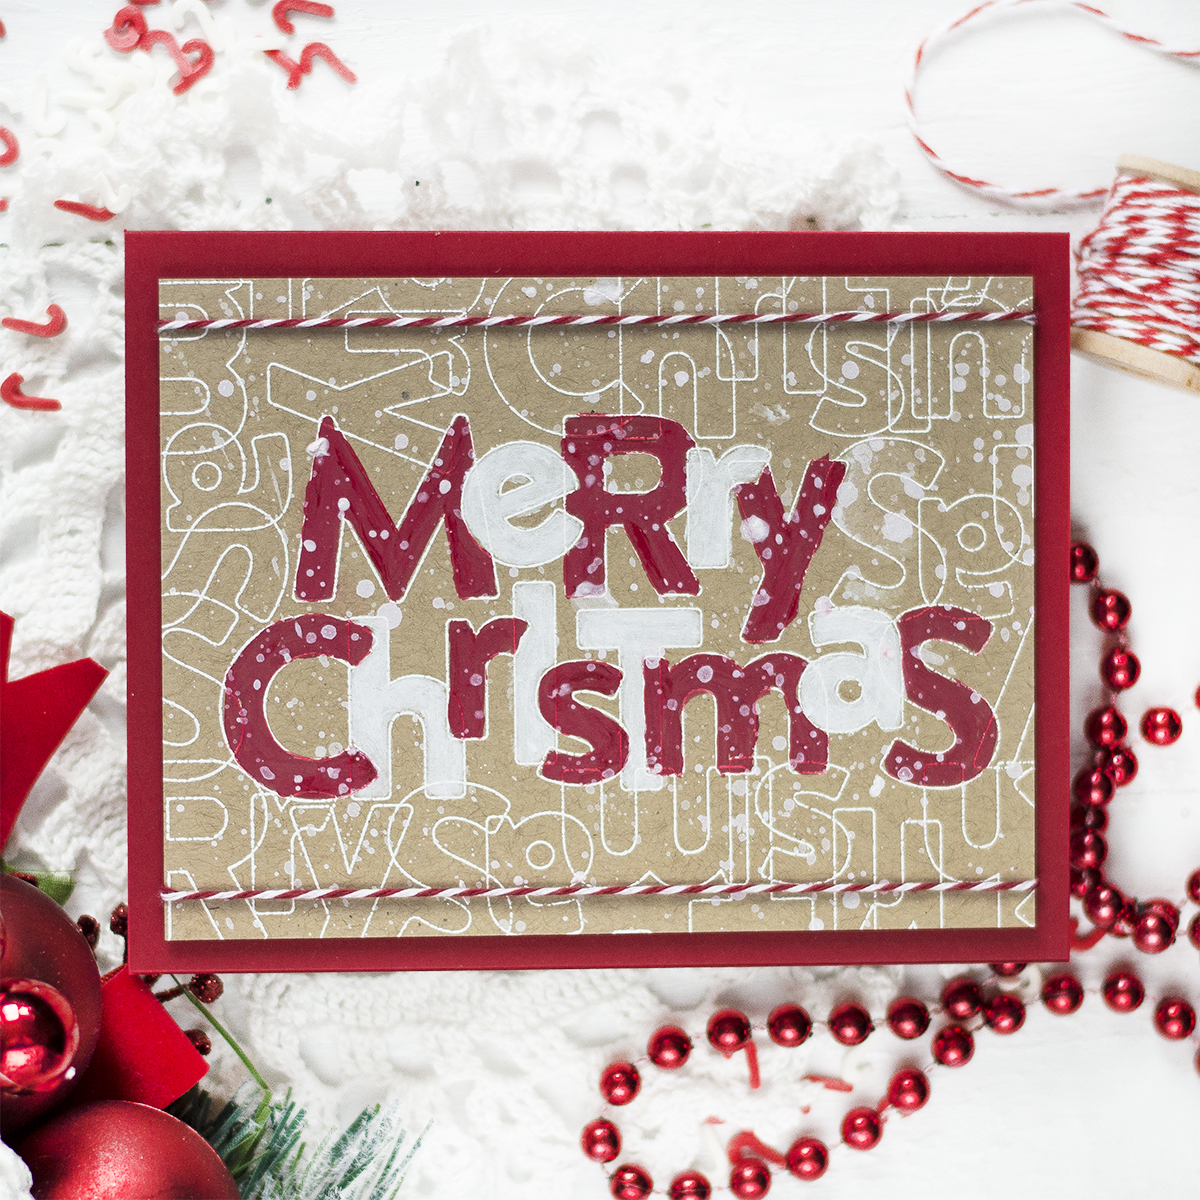 Painted Sentiment Christmas Card. Card by Svitlana Shayevich